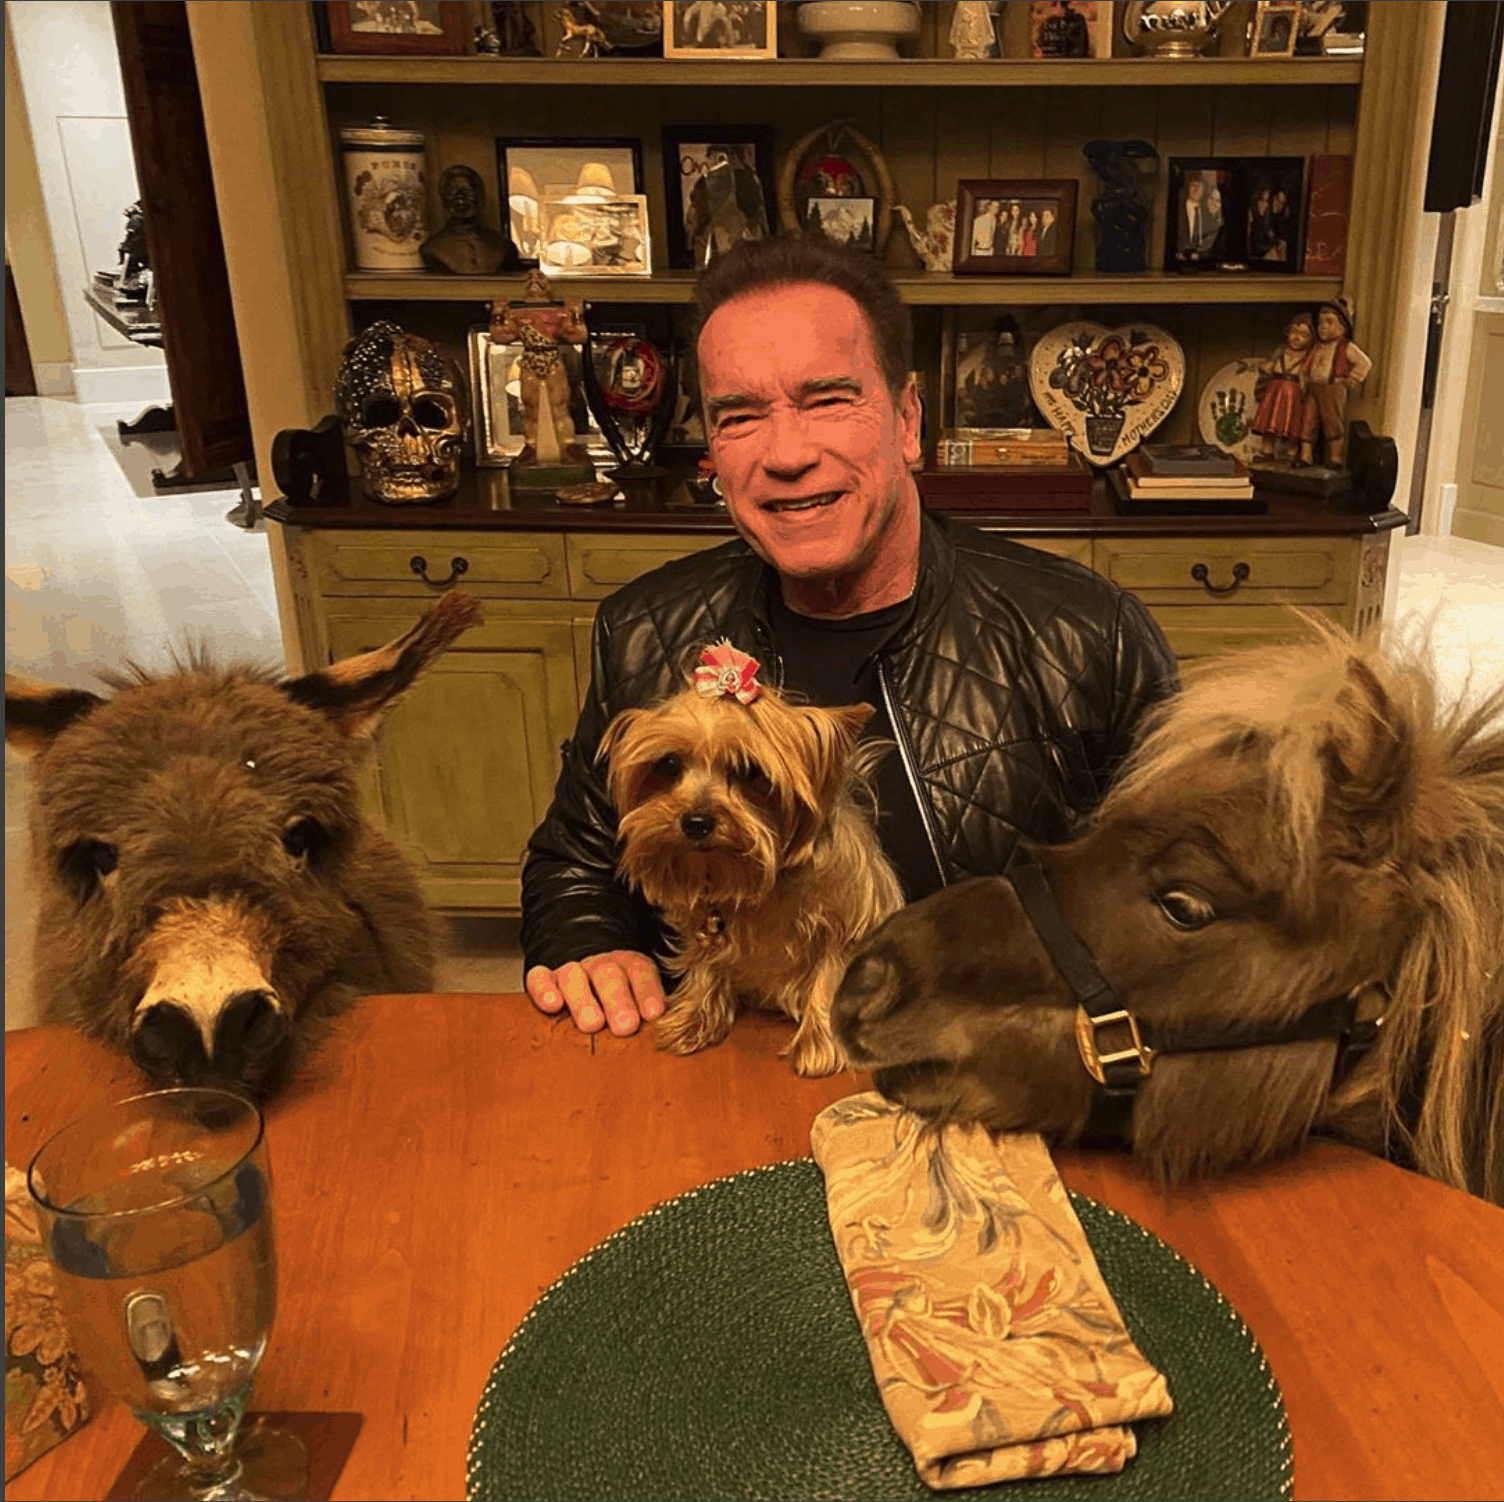 Arnold Schwarzenegger with ponies and puppy